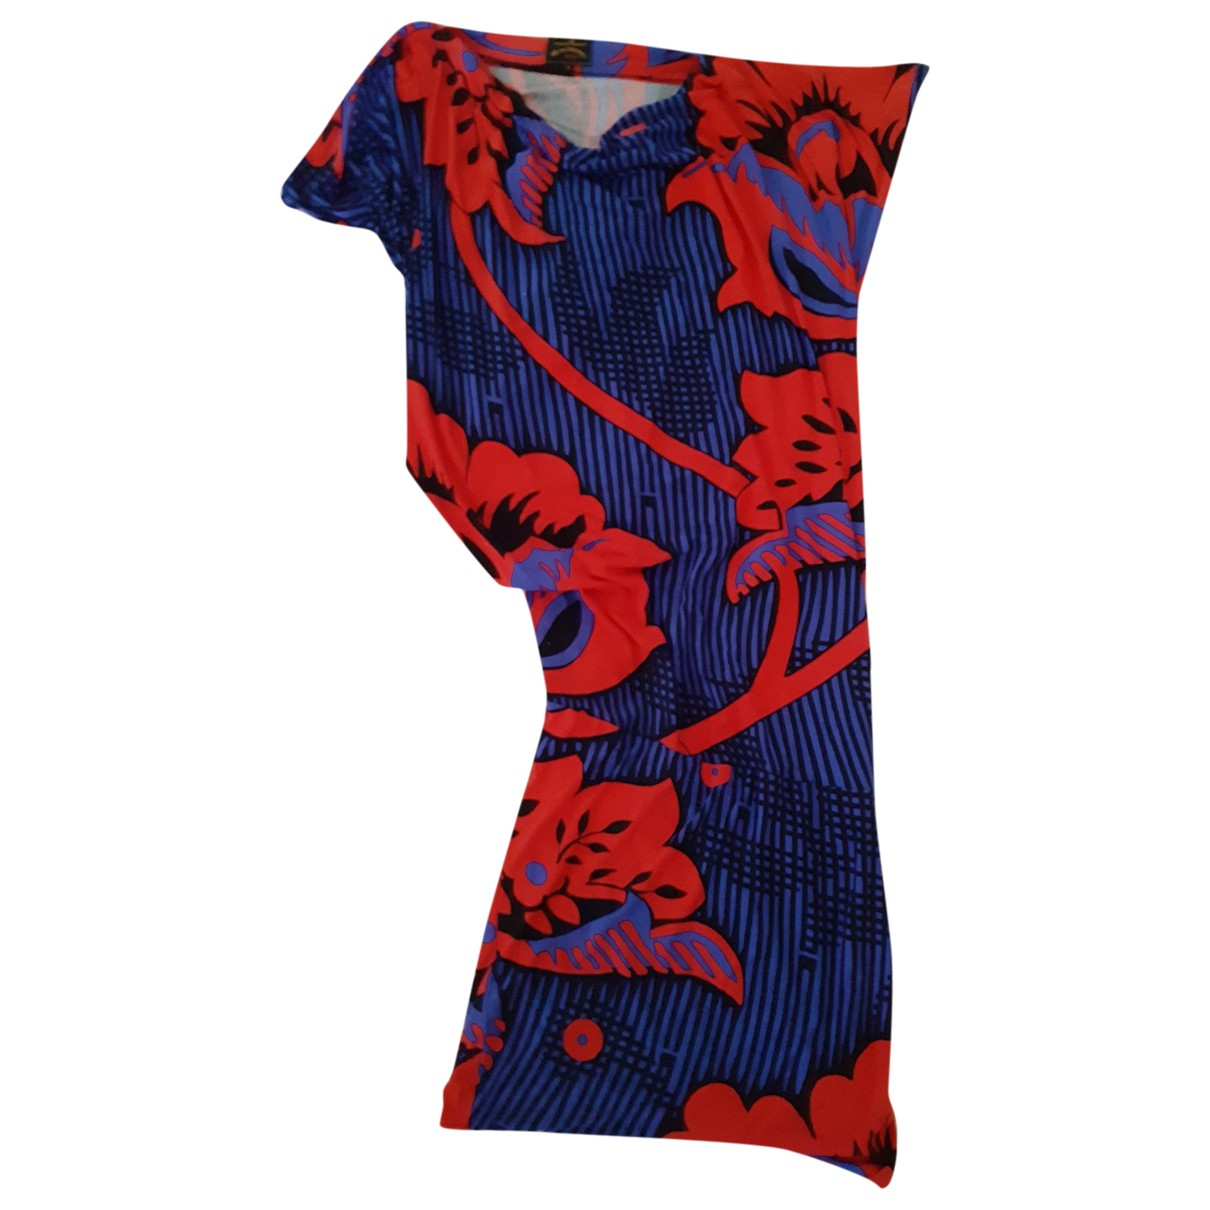 Vivienne Westwood Anglomania \N Multicolour dress for Women S International